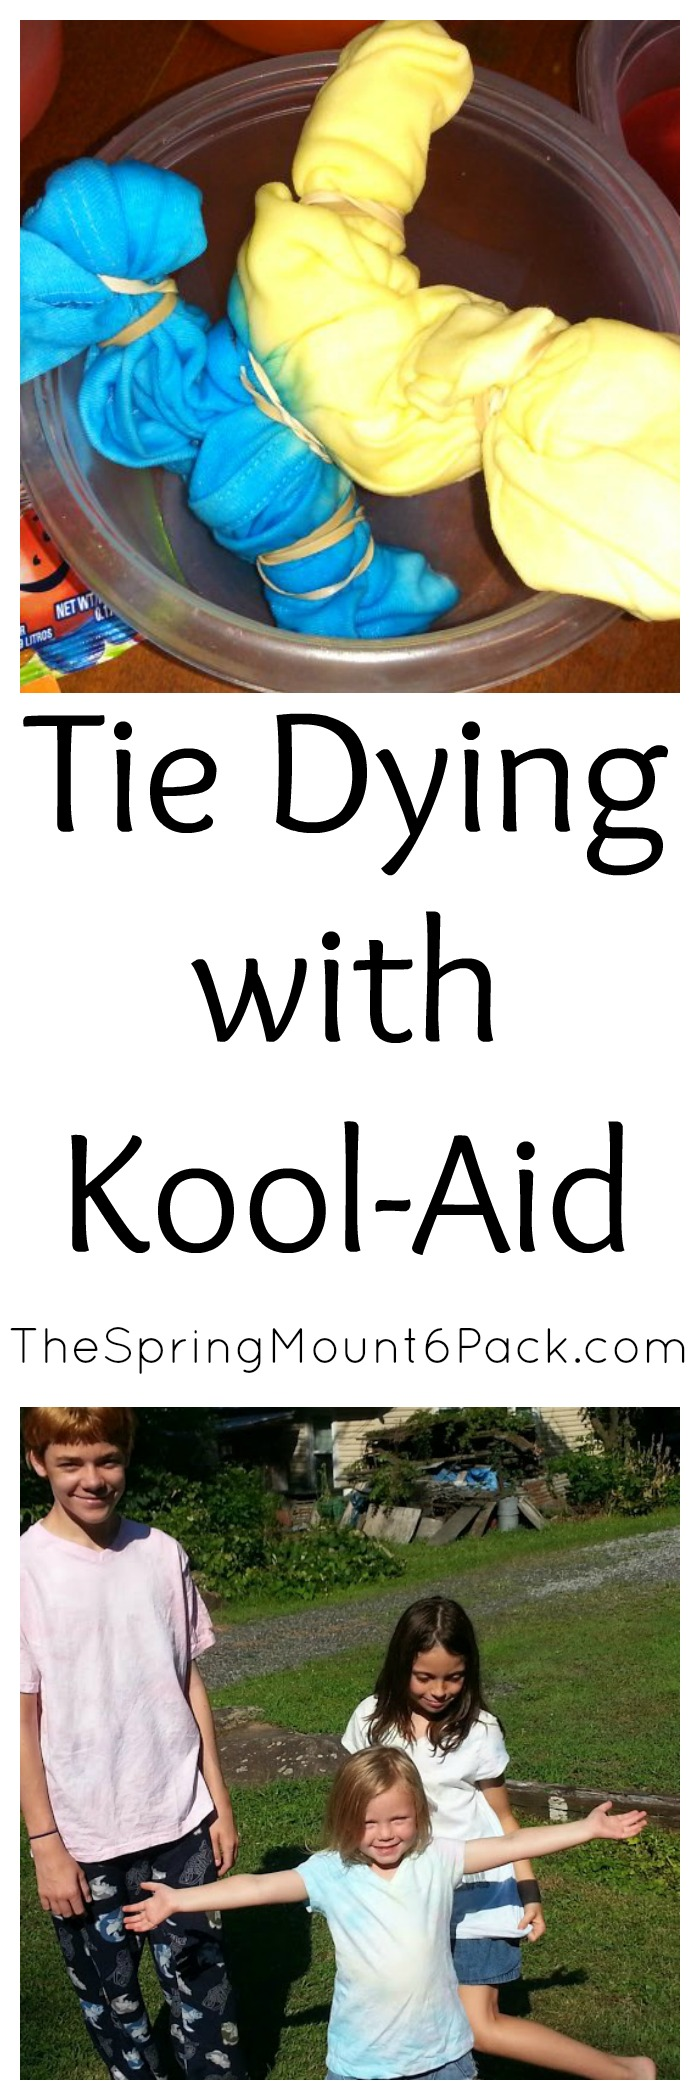 Kids love crafts. It can be lots of fun to try tie dying with Kool-Aid. Kids love it. It is non toxic if the sneak some and cleans up easily.